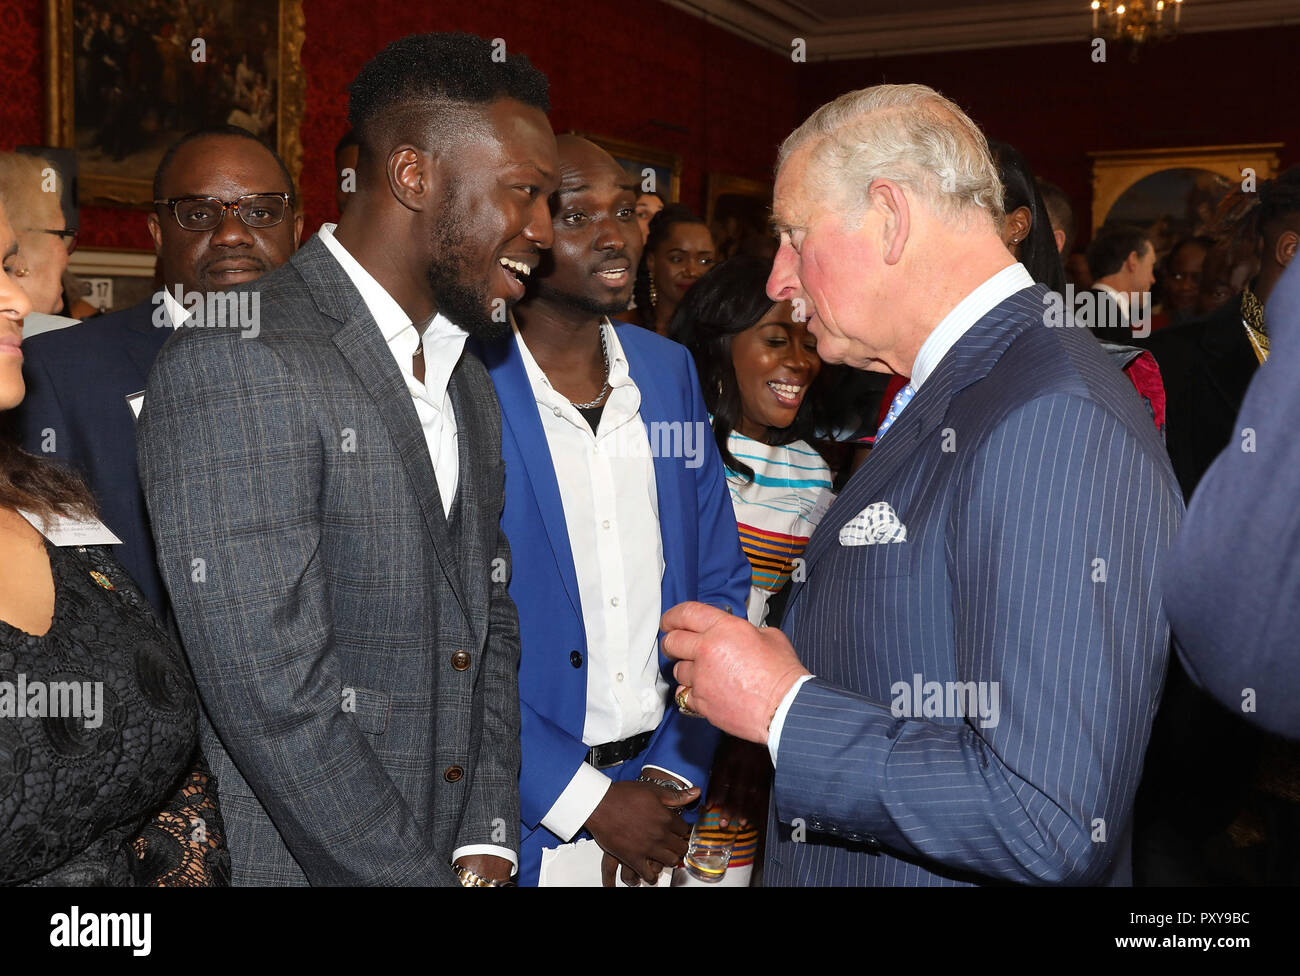 The Prince of Wales talking with Ghanian Music duo Reggie Zippy and Bollie Babeface known as 'Reggie 'n' Bollie' during a reception at St James's Palace, London, ahead of his visit to The Gambia, Ghana and Nigeria. Stock Photo